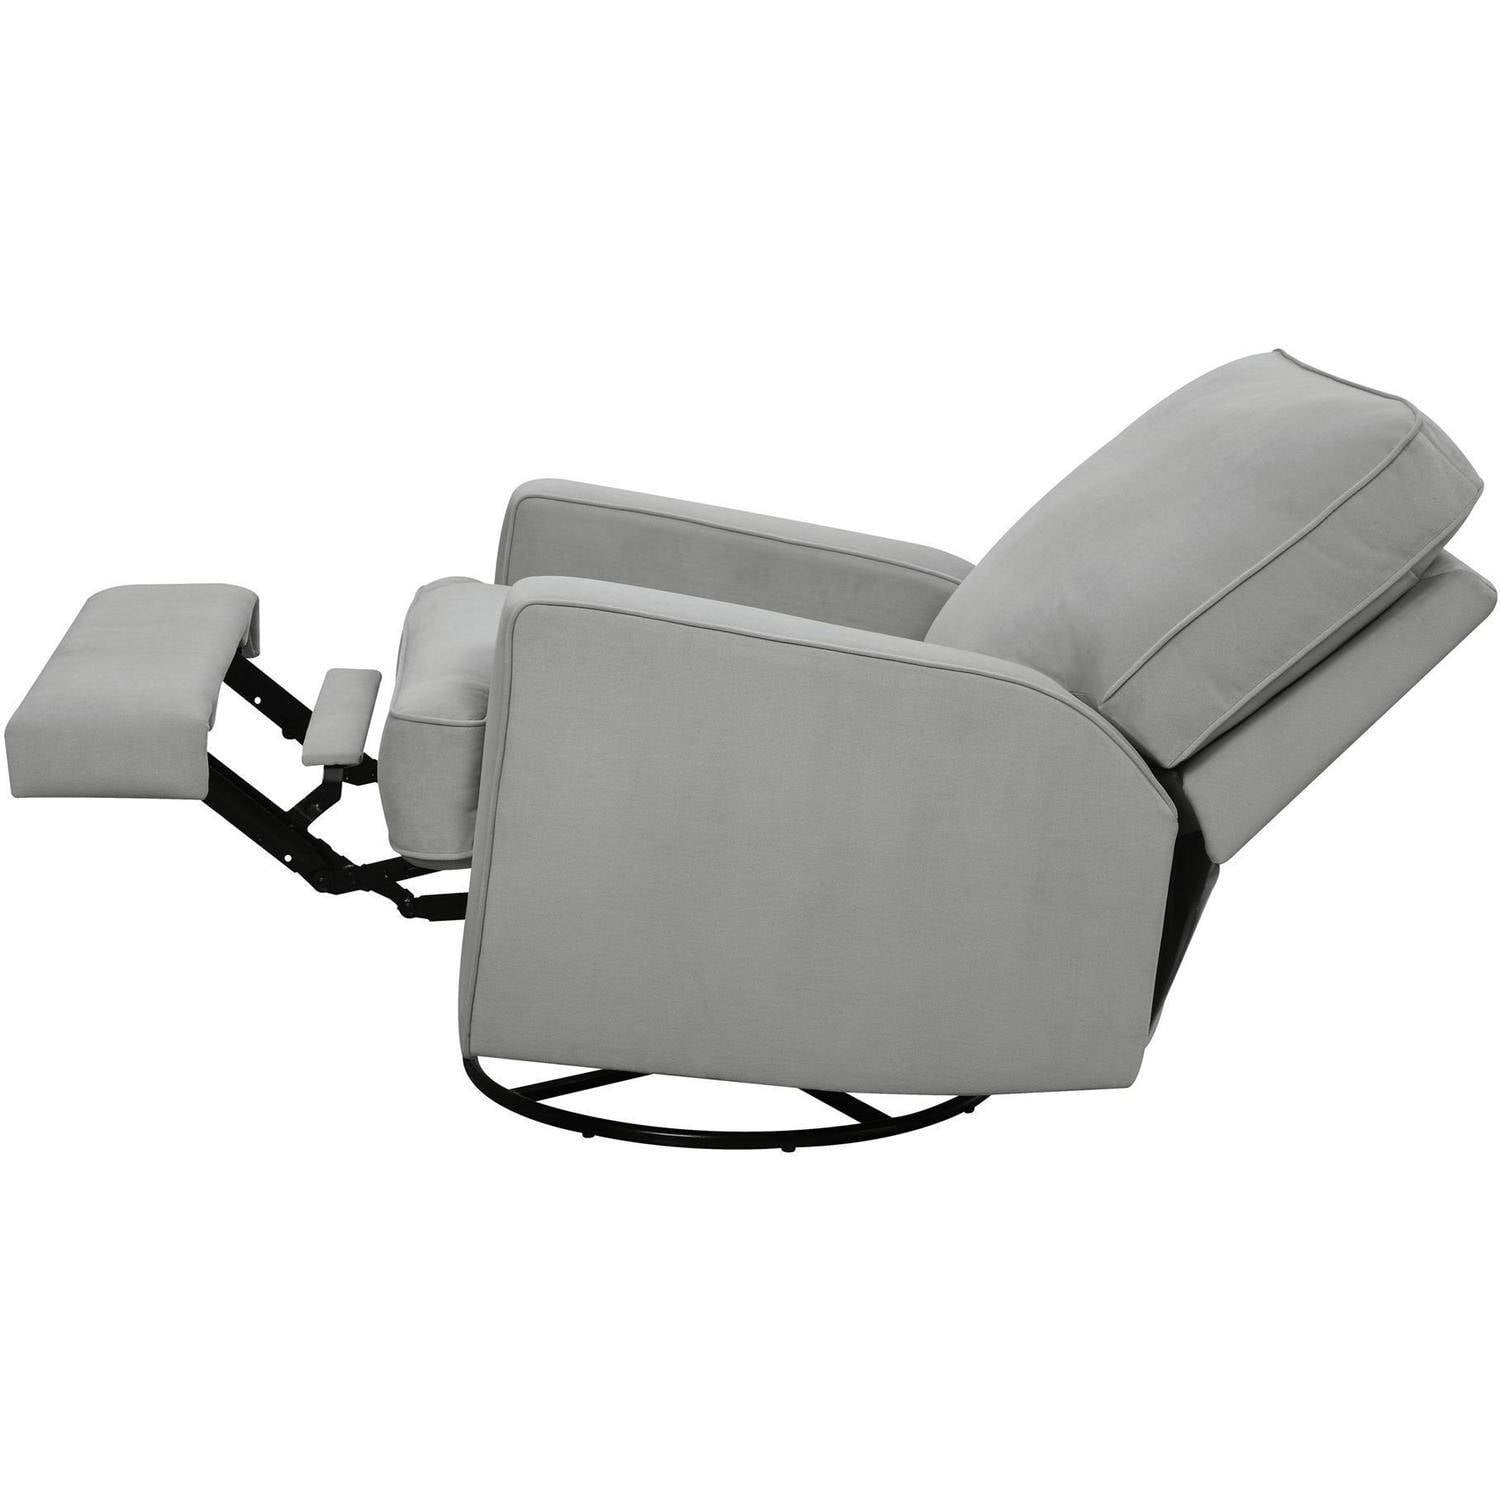 Baby Relax Rylan Swivel Gliding Recliner (Choose your Color) - Walmart.com  sc 1 st  Walmart : infant recliner - islam-shia.org